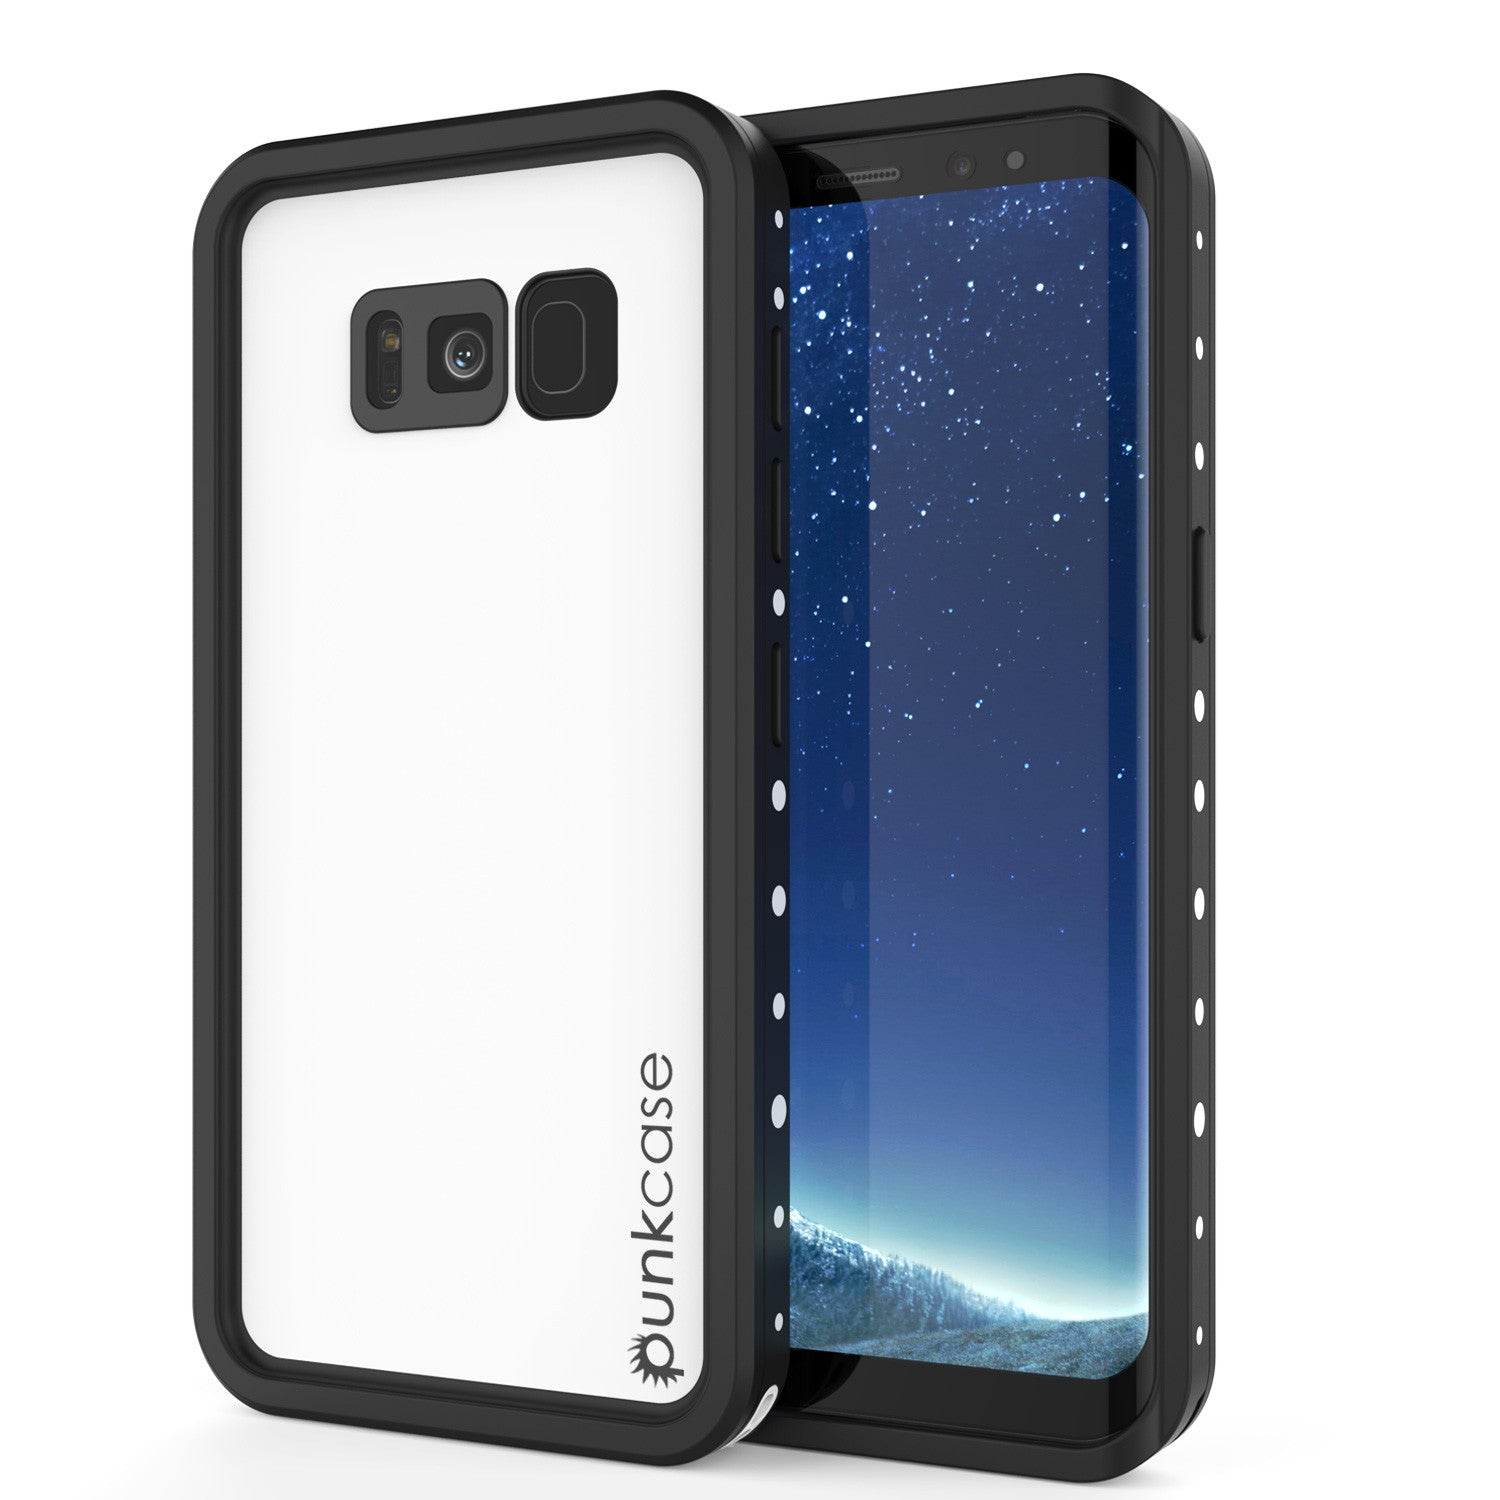 Galaxy S8 Waterproof Case, Punkcase StudStar White Thin 6.6ft Underwater IP68 Shock/Snow Proof